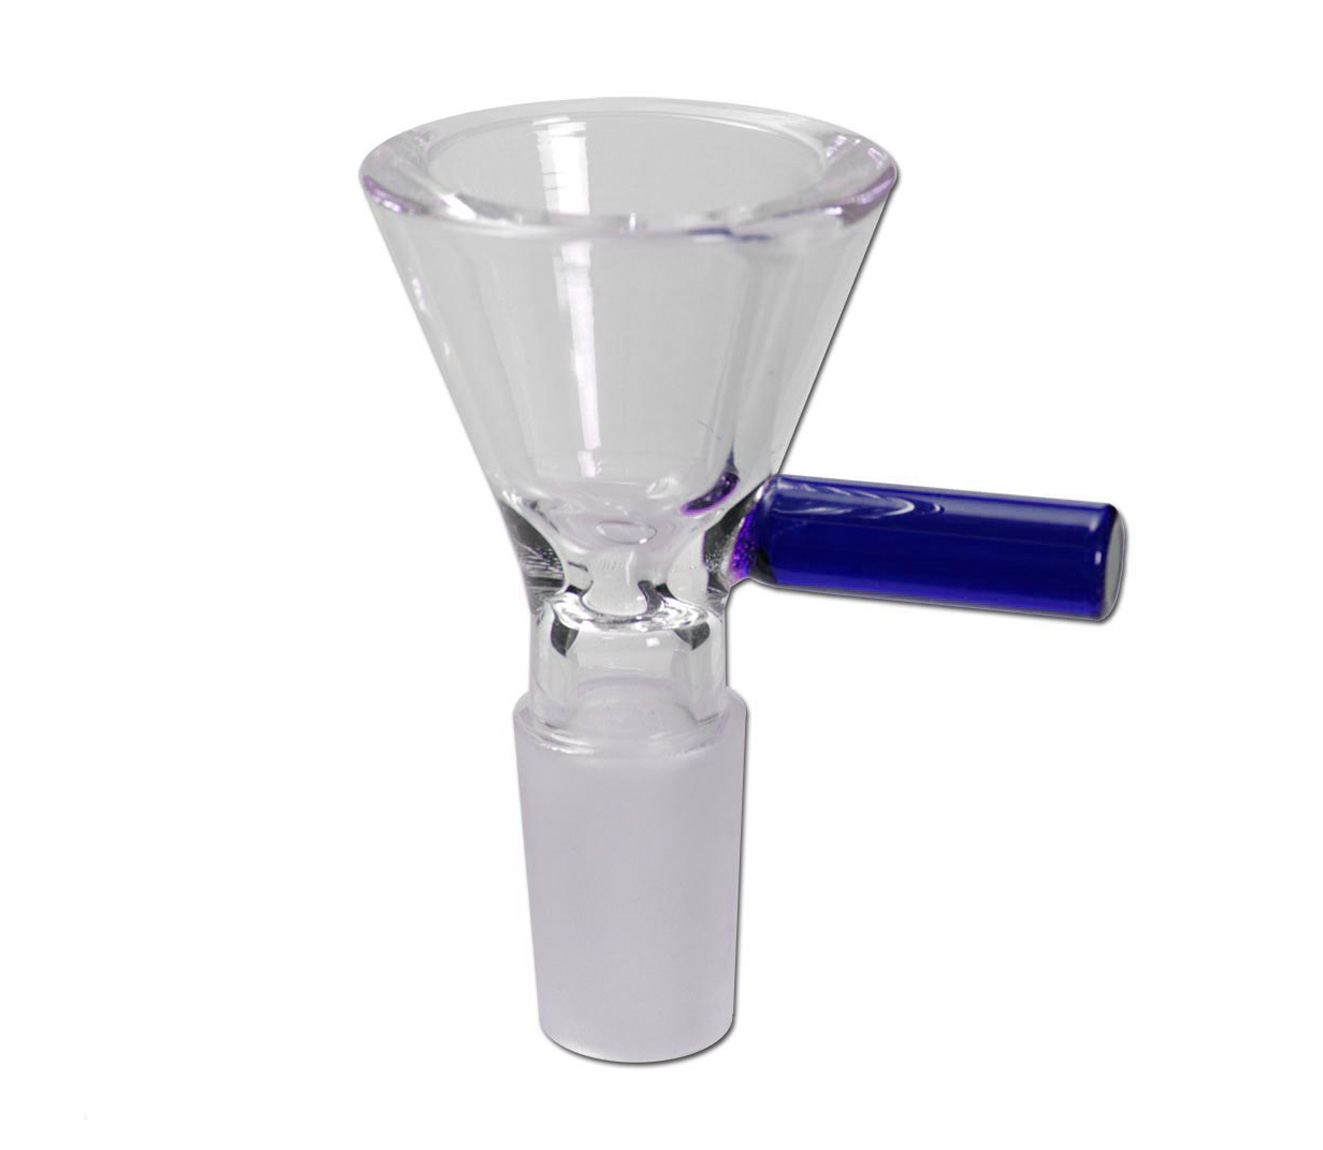 Glass Funnel Bowl with handle - Blauw - Waterpijp-bong.nl